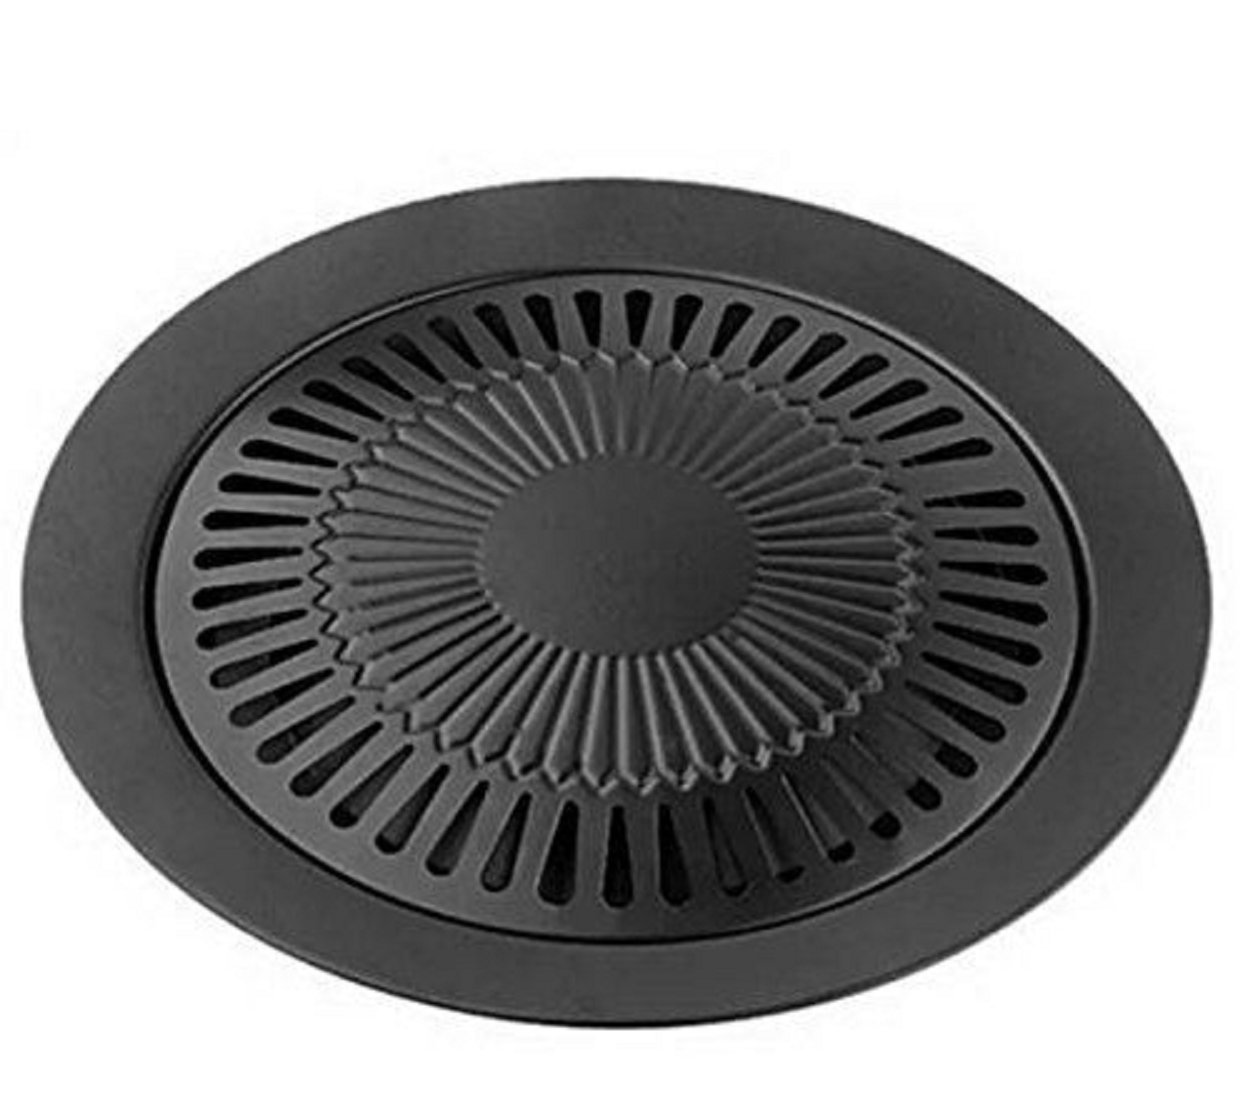 Amazon.com: Grill Stovetop Indoor Cast Pan Stove Cover Griddle BBQ ...